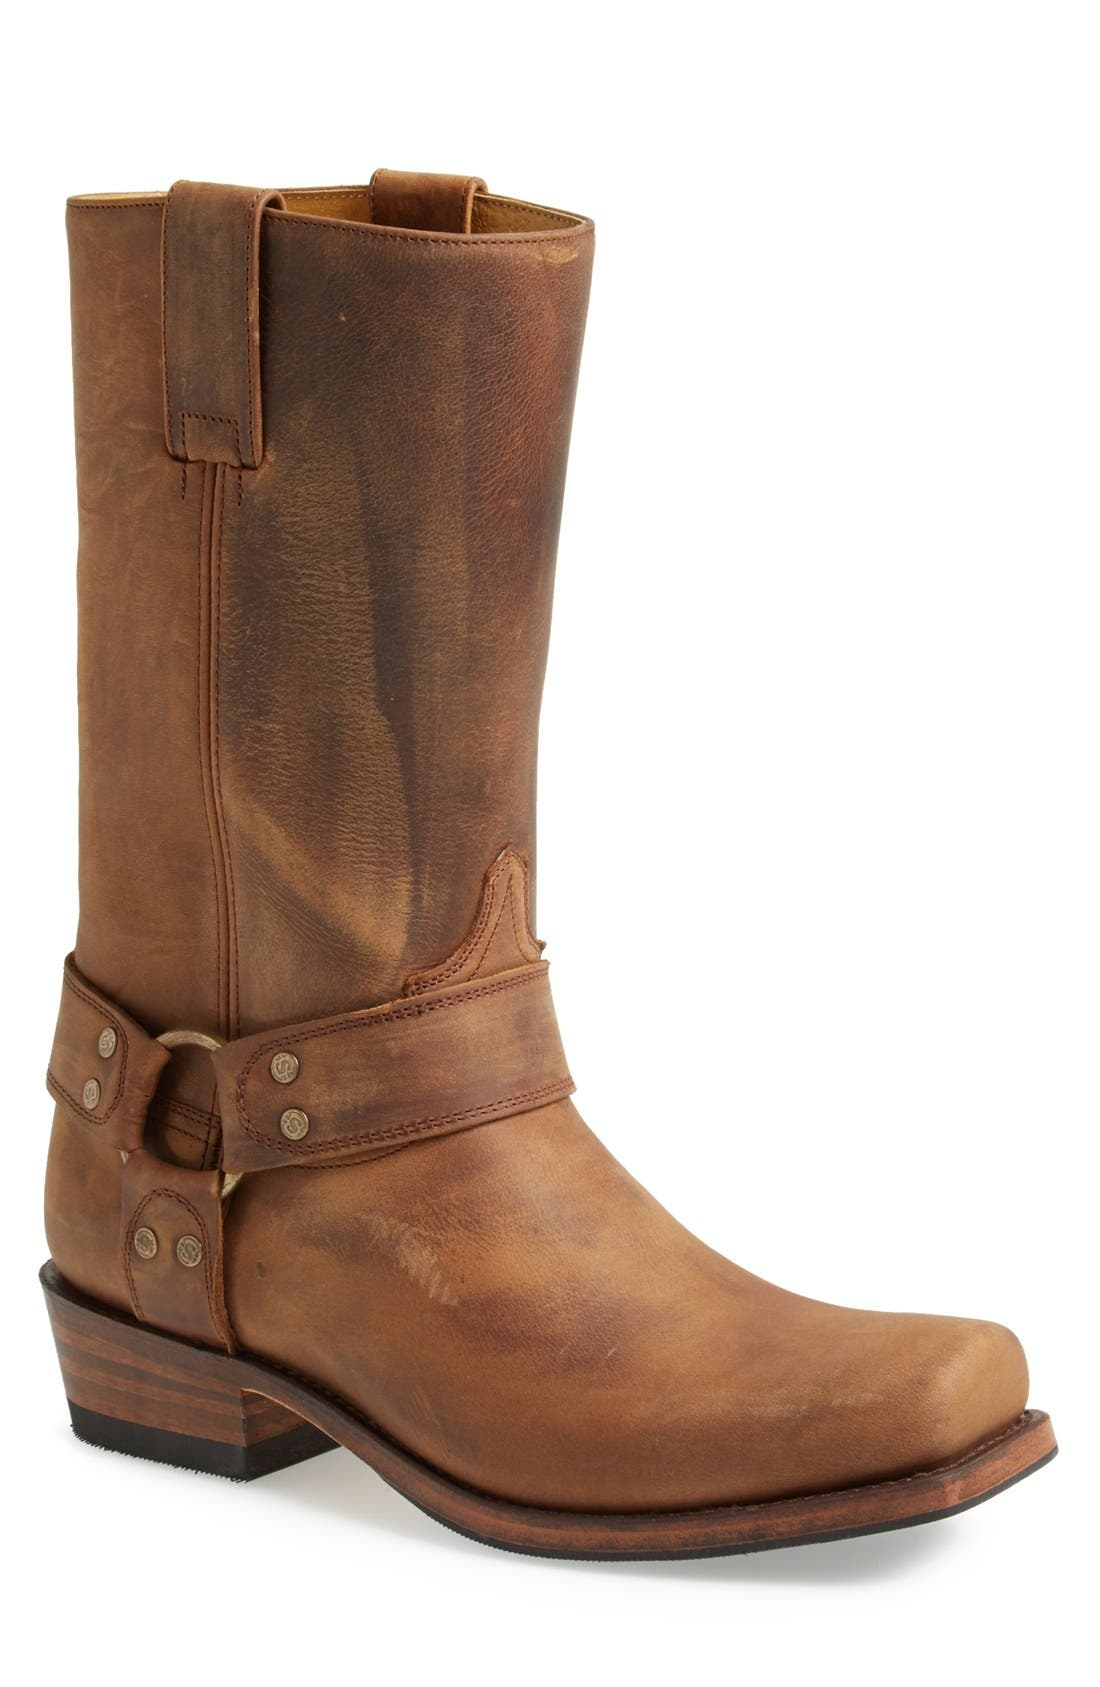 Boots Tall Harness Boot,                         Main,                         color, TAN